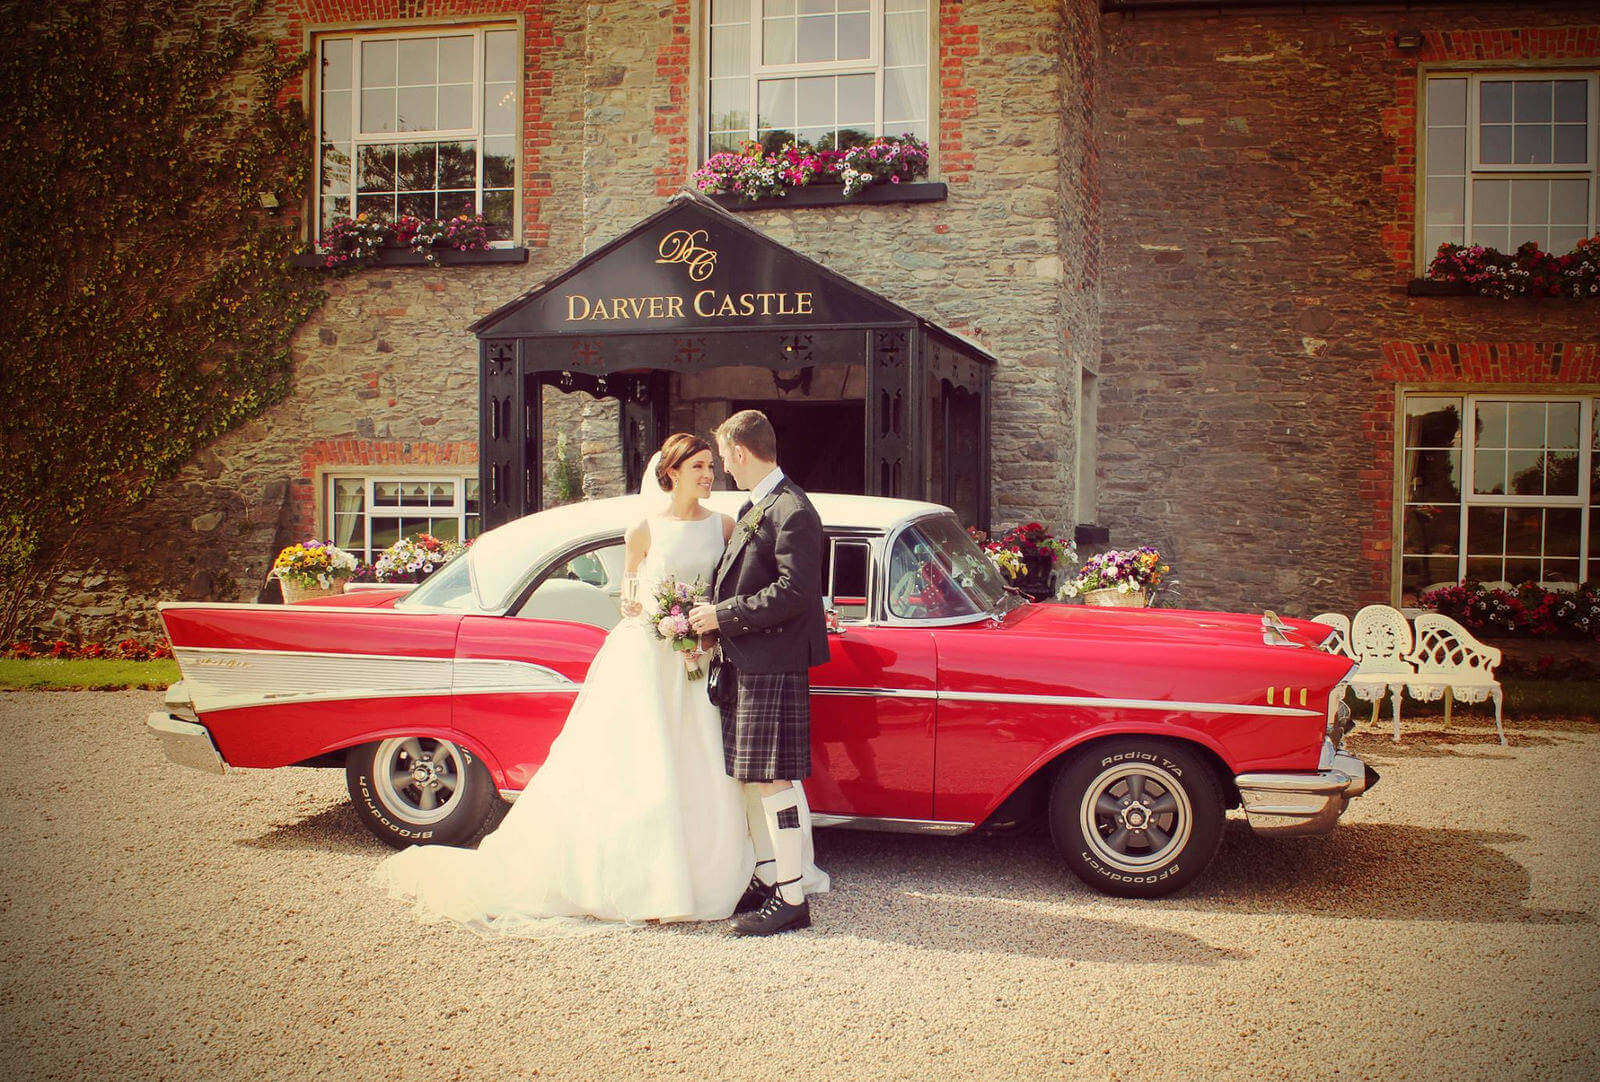 Wedding Bands Ireland - Wedding Suppliers - Darver Castle